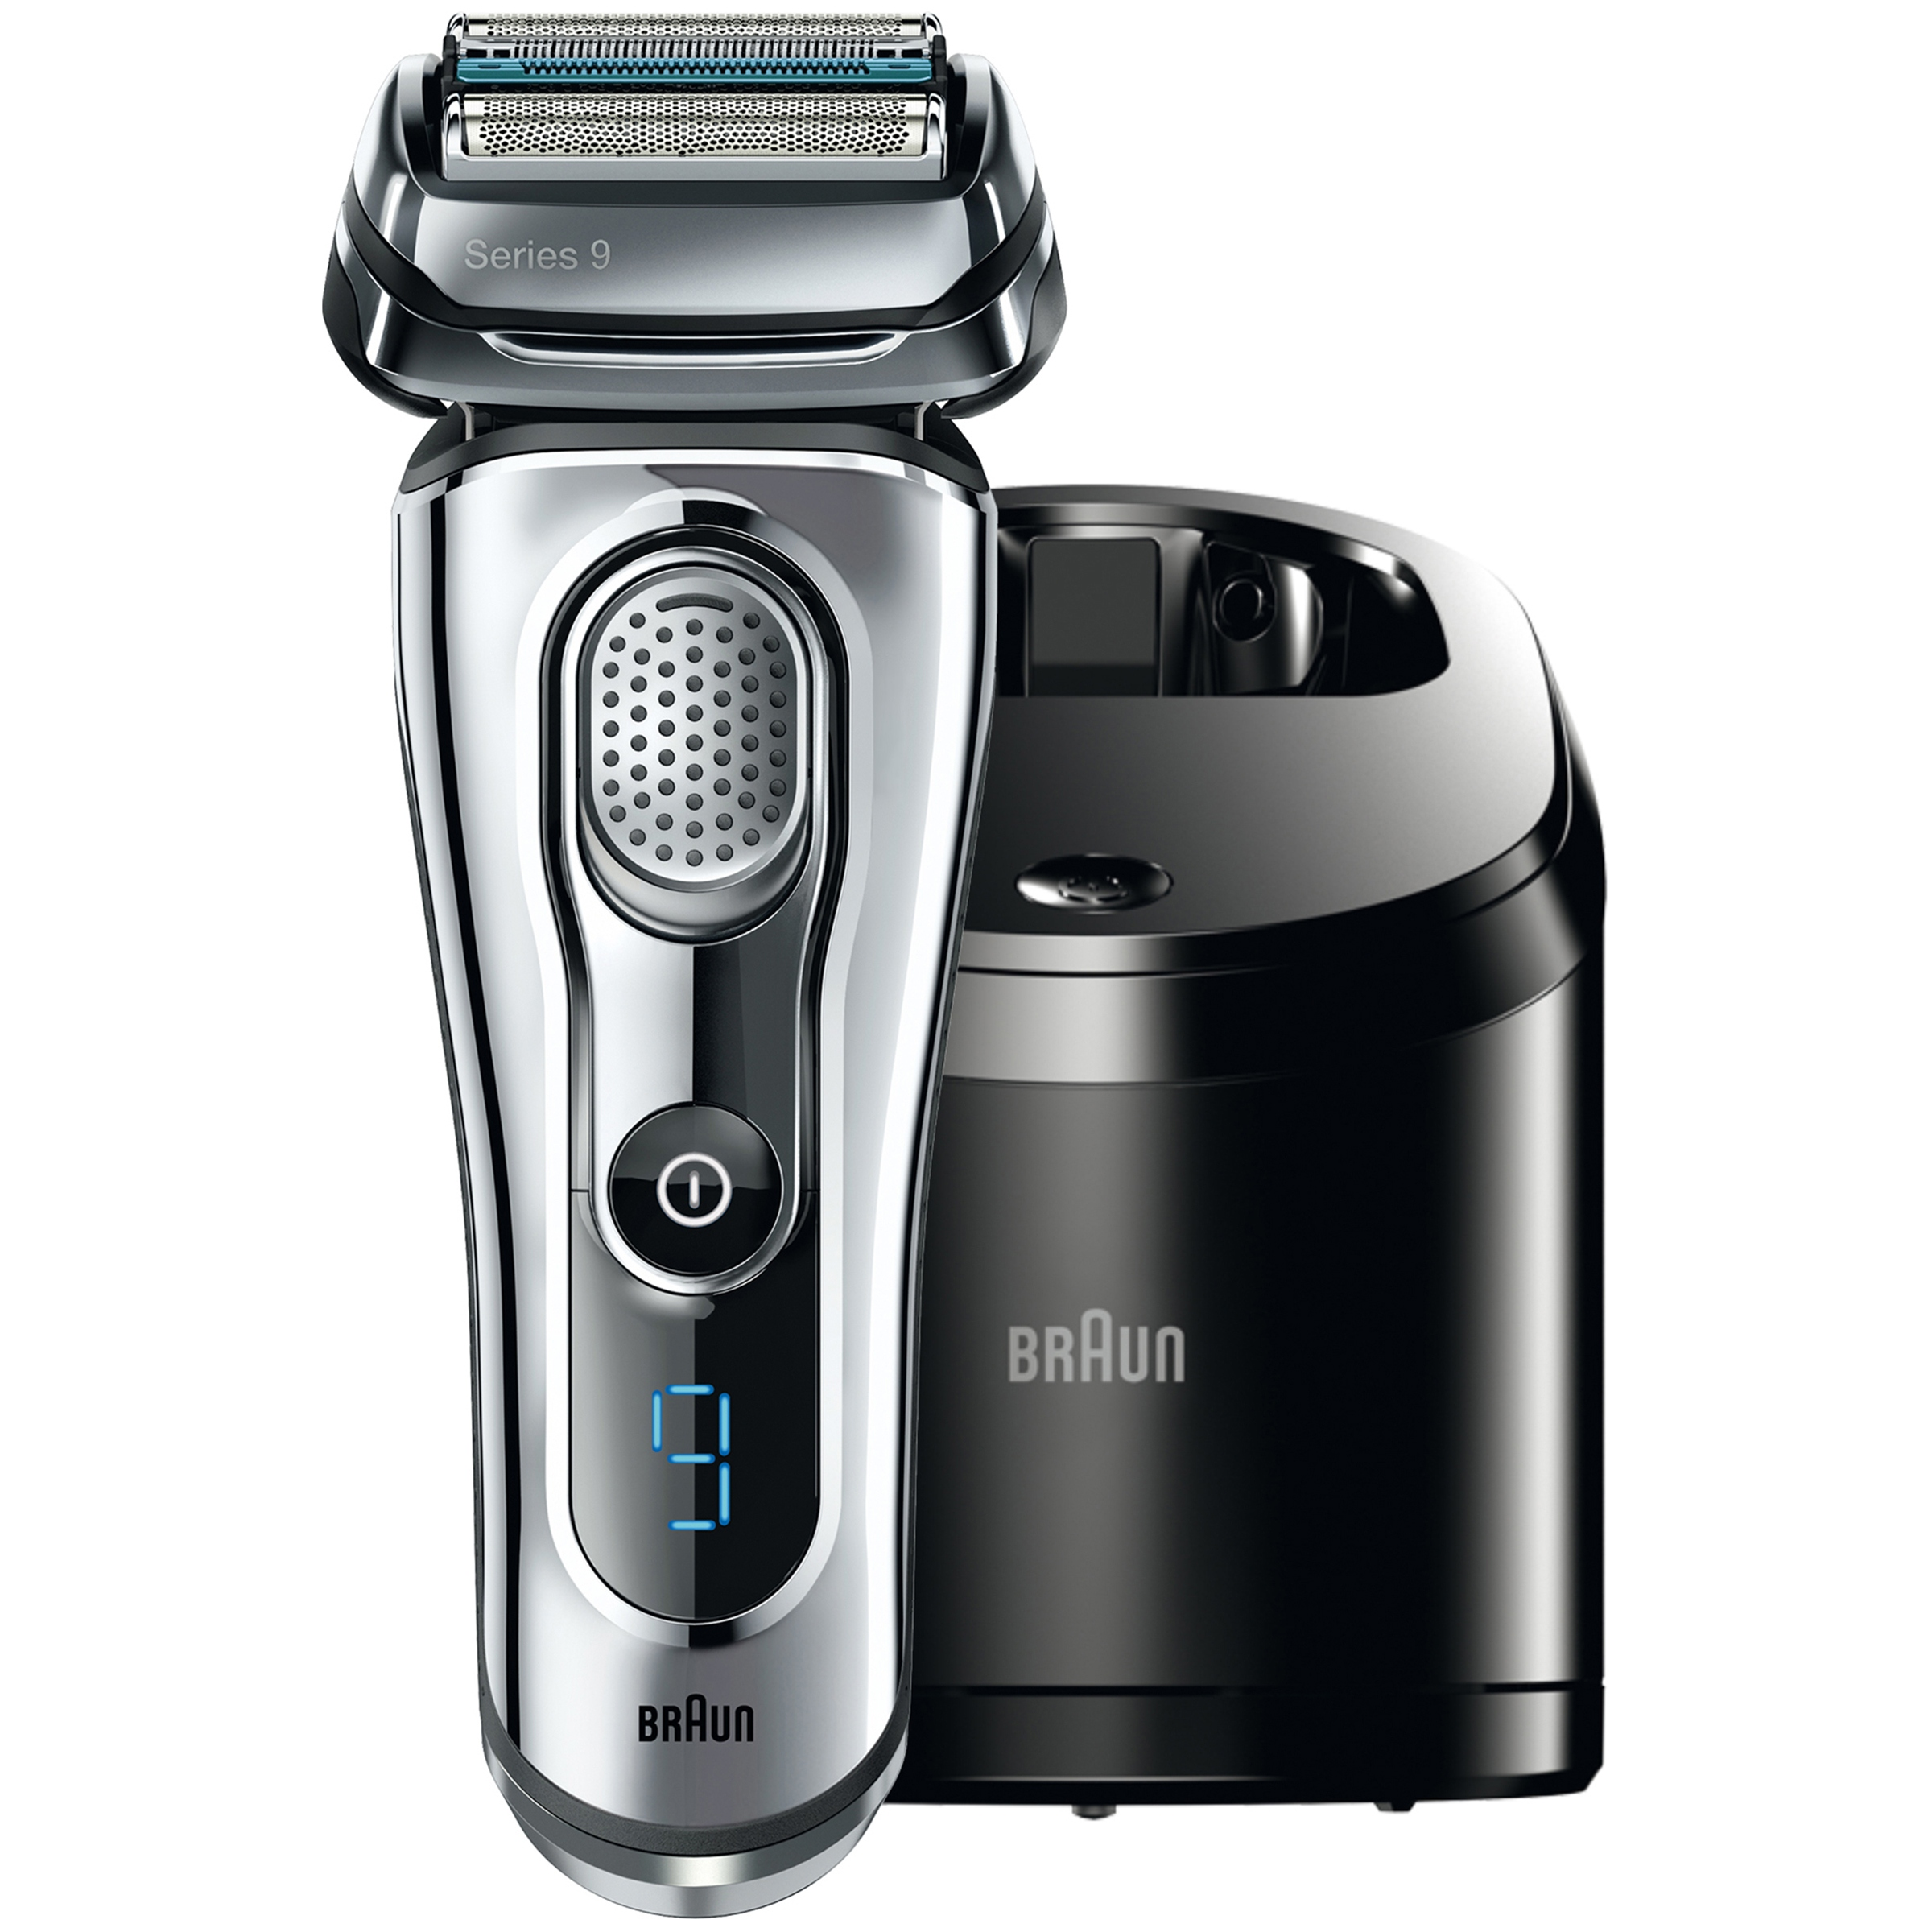 Braun Series 9 9090cc Premium Electric Shaver + Advanced Clean & Charge Station, 6 pieces